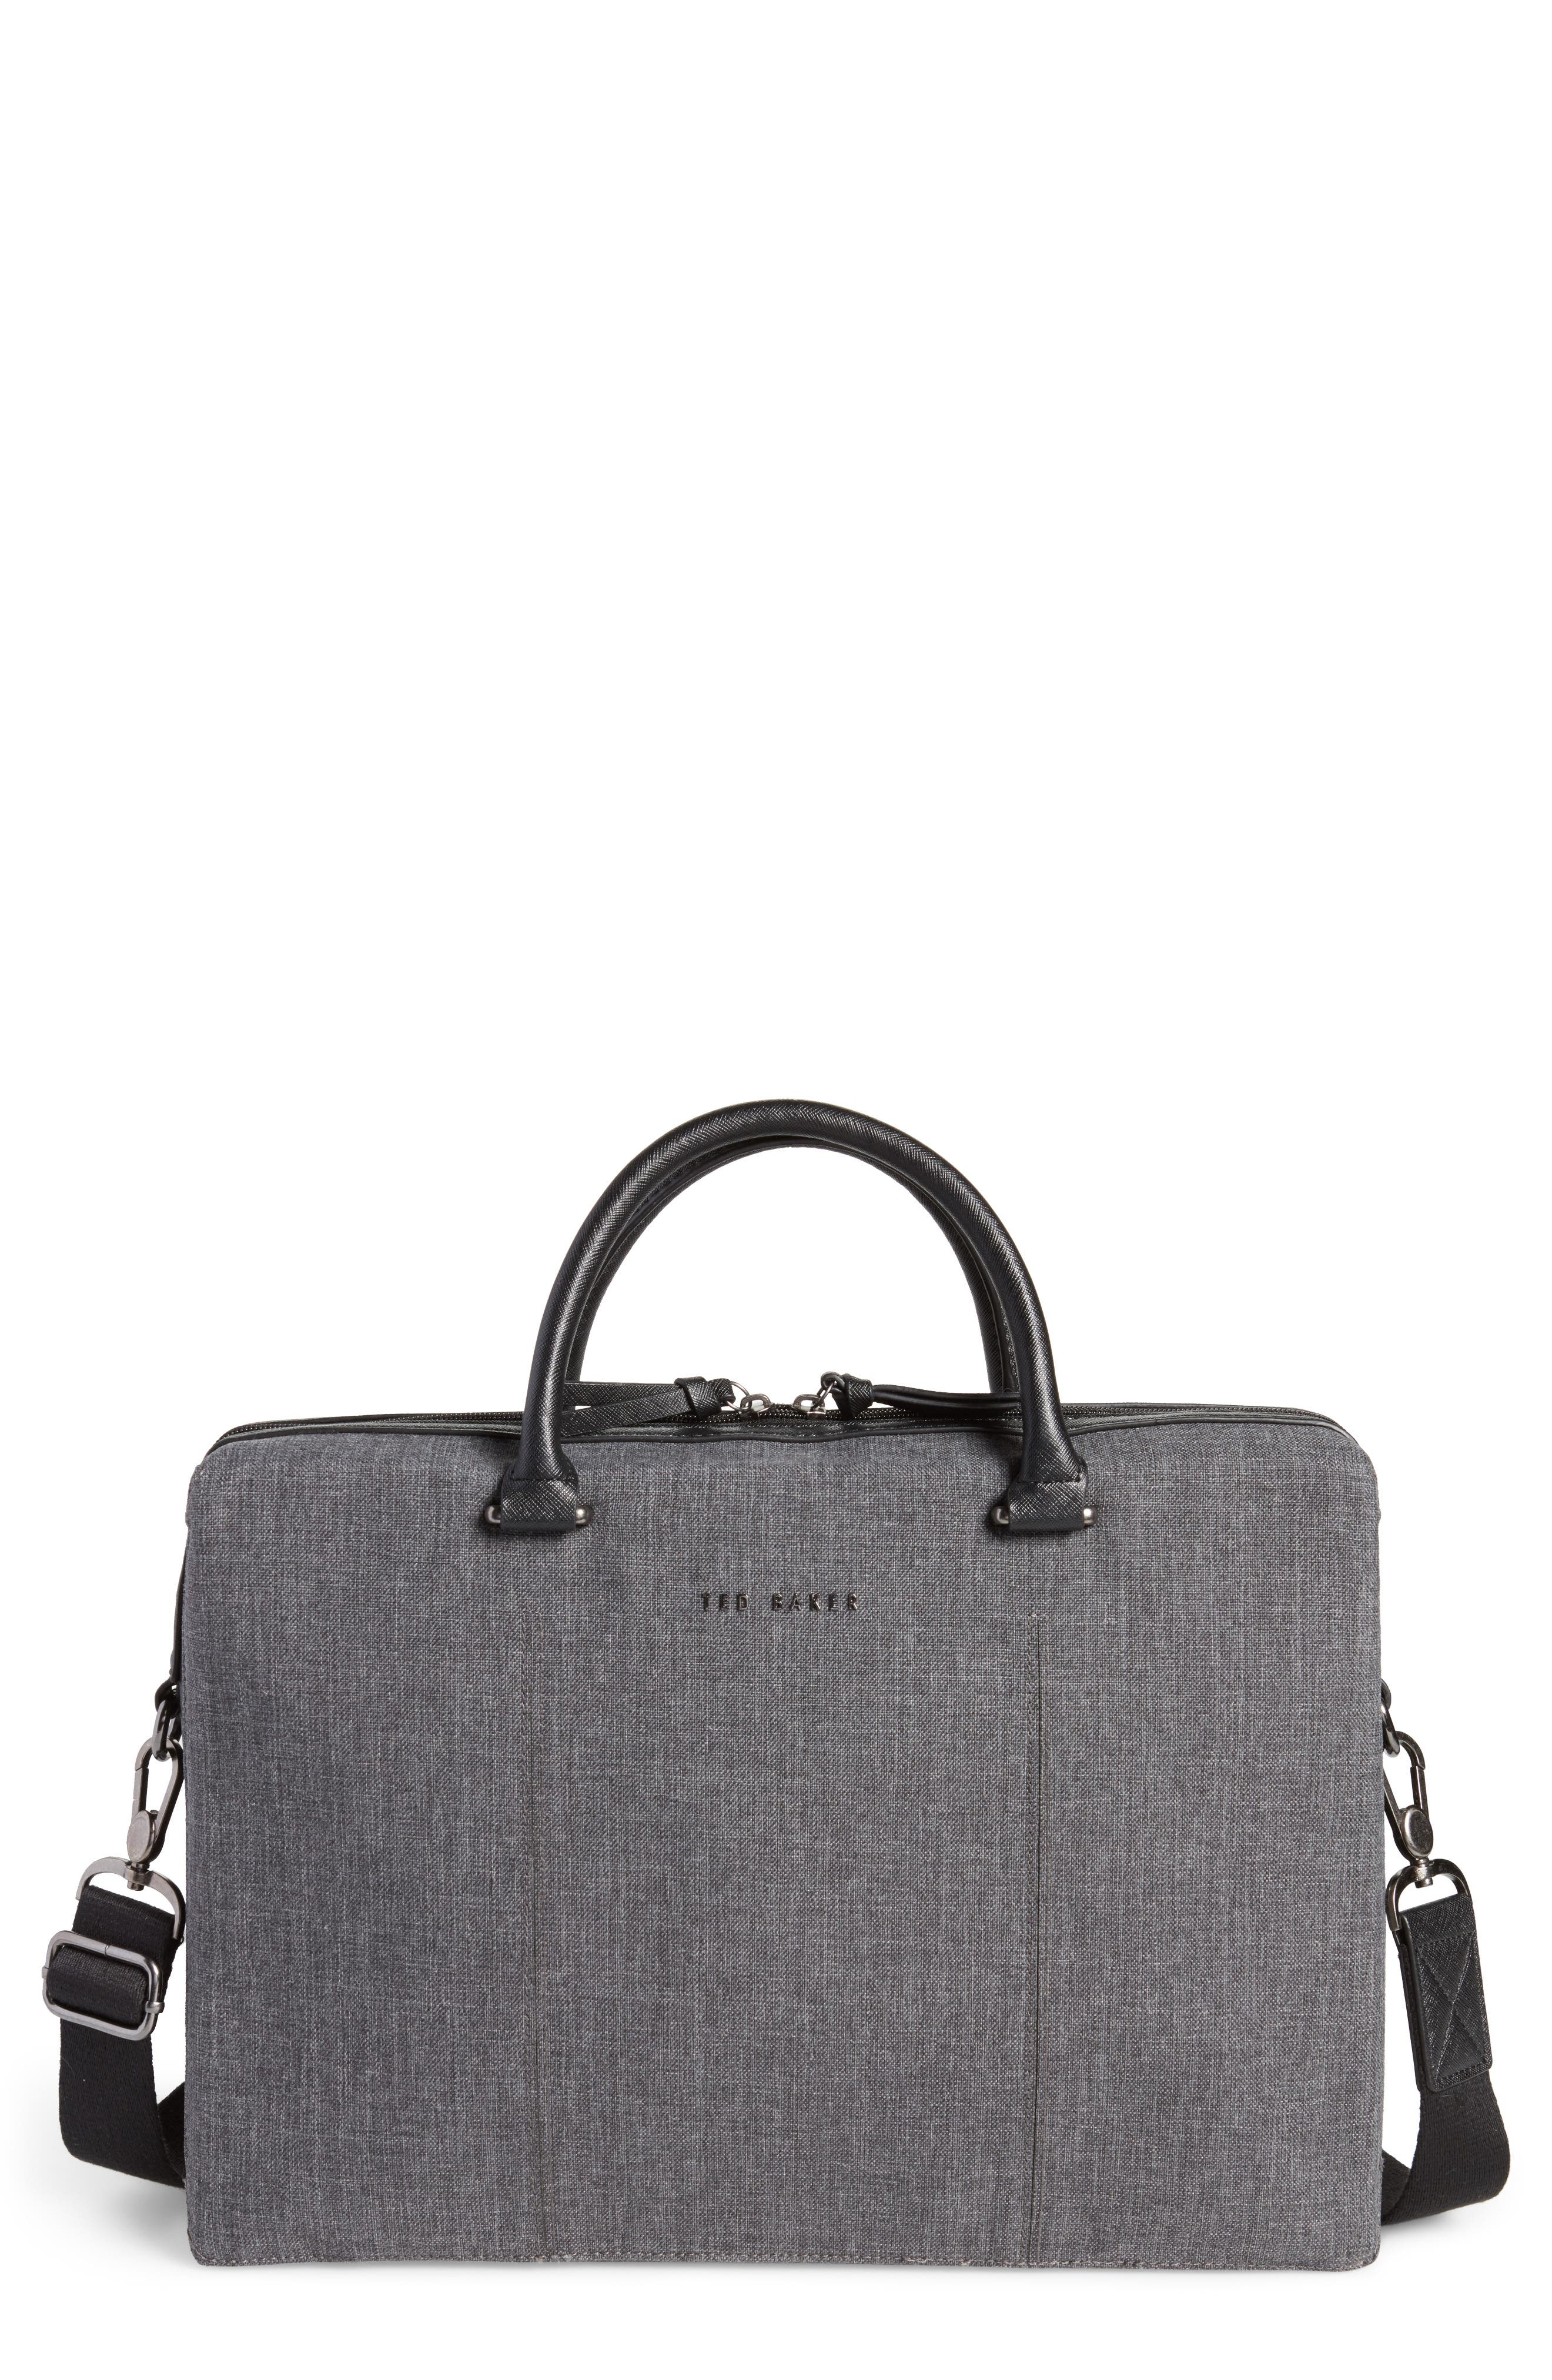 TED BAKER LONDON Citrice Document Briefcase, Main, color, 010